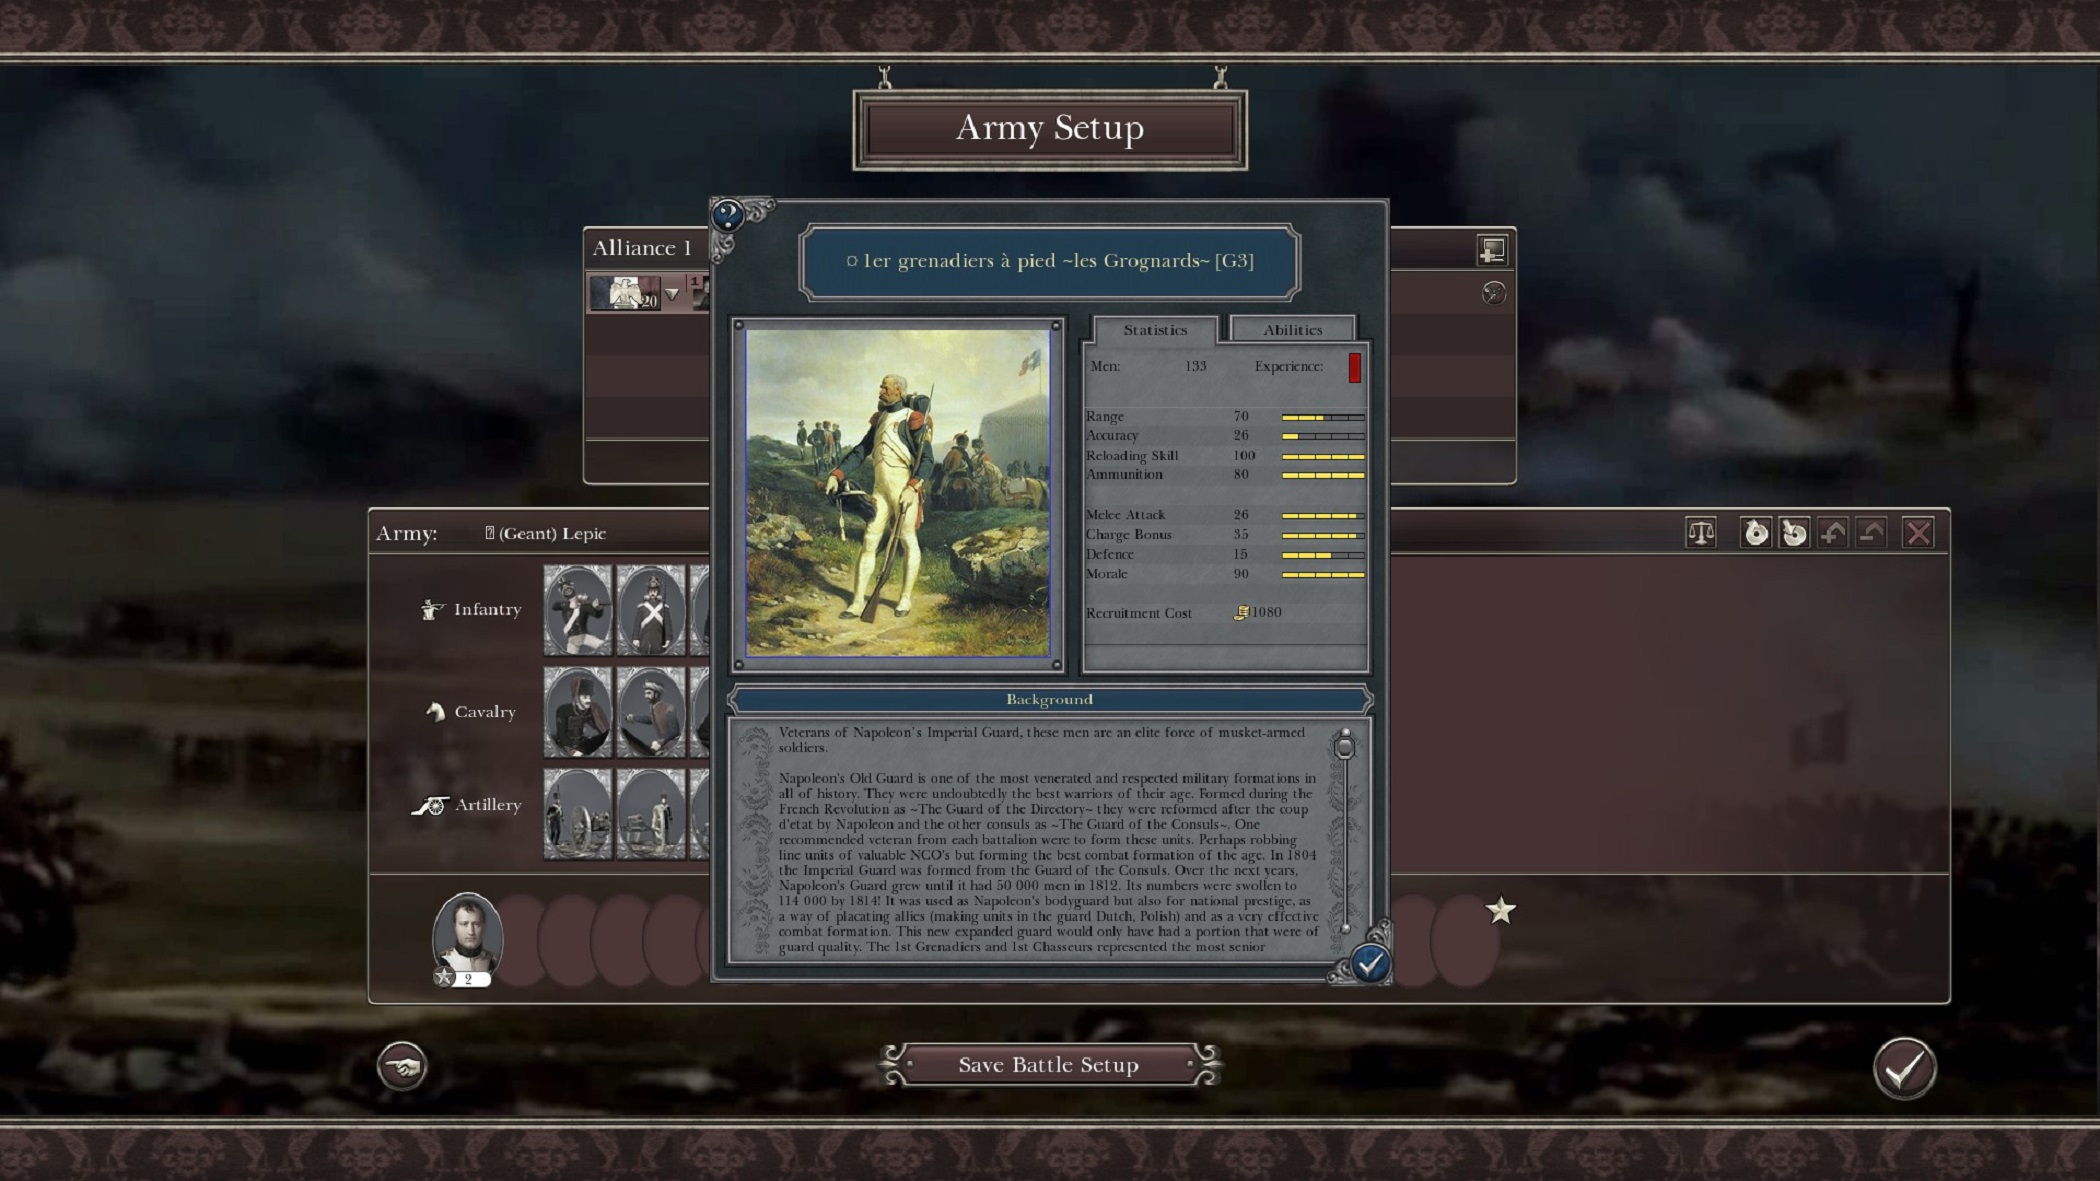 Napoleonic: Total War III ~ NTW3 ~ Gameplay 1er grenadiers à pied ~ les Grognards unit card display screen